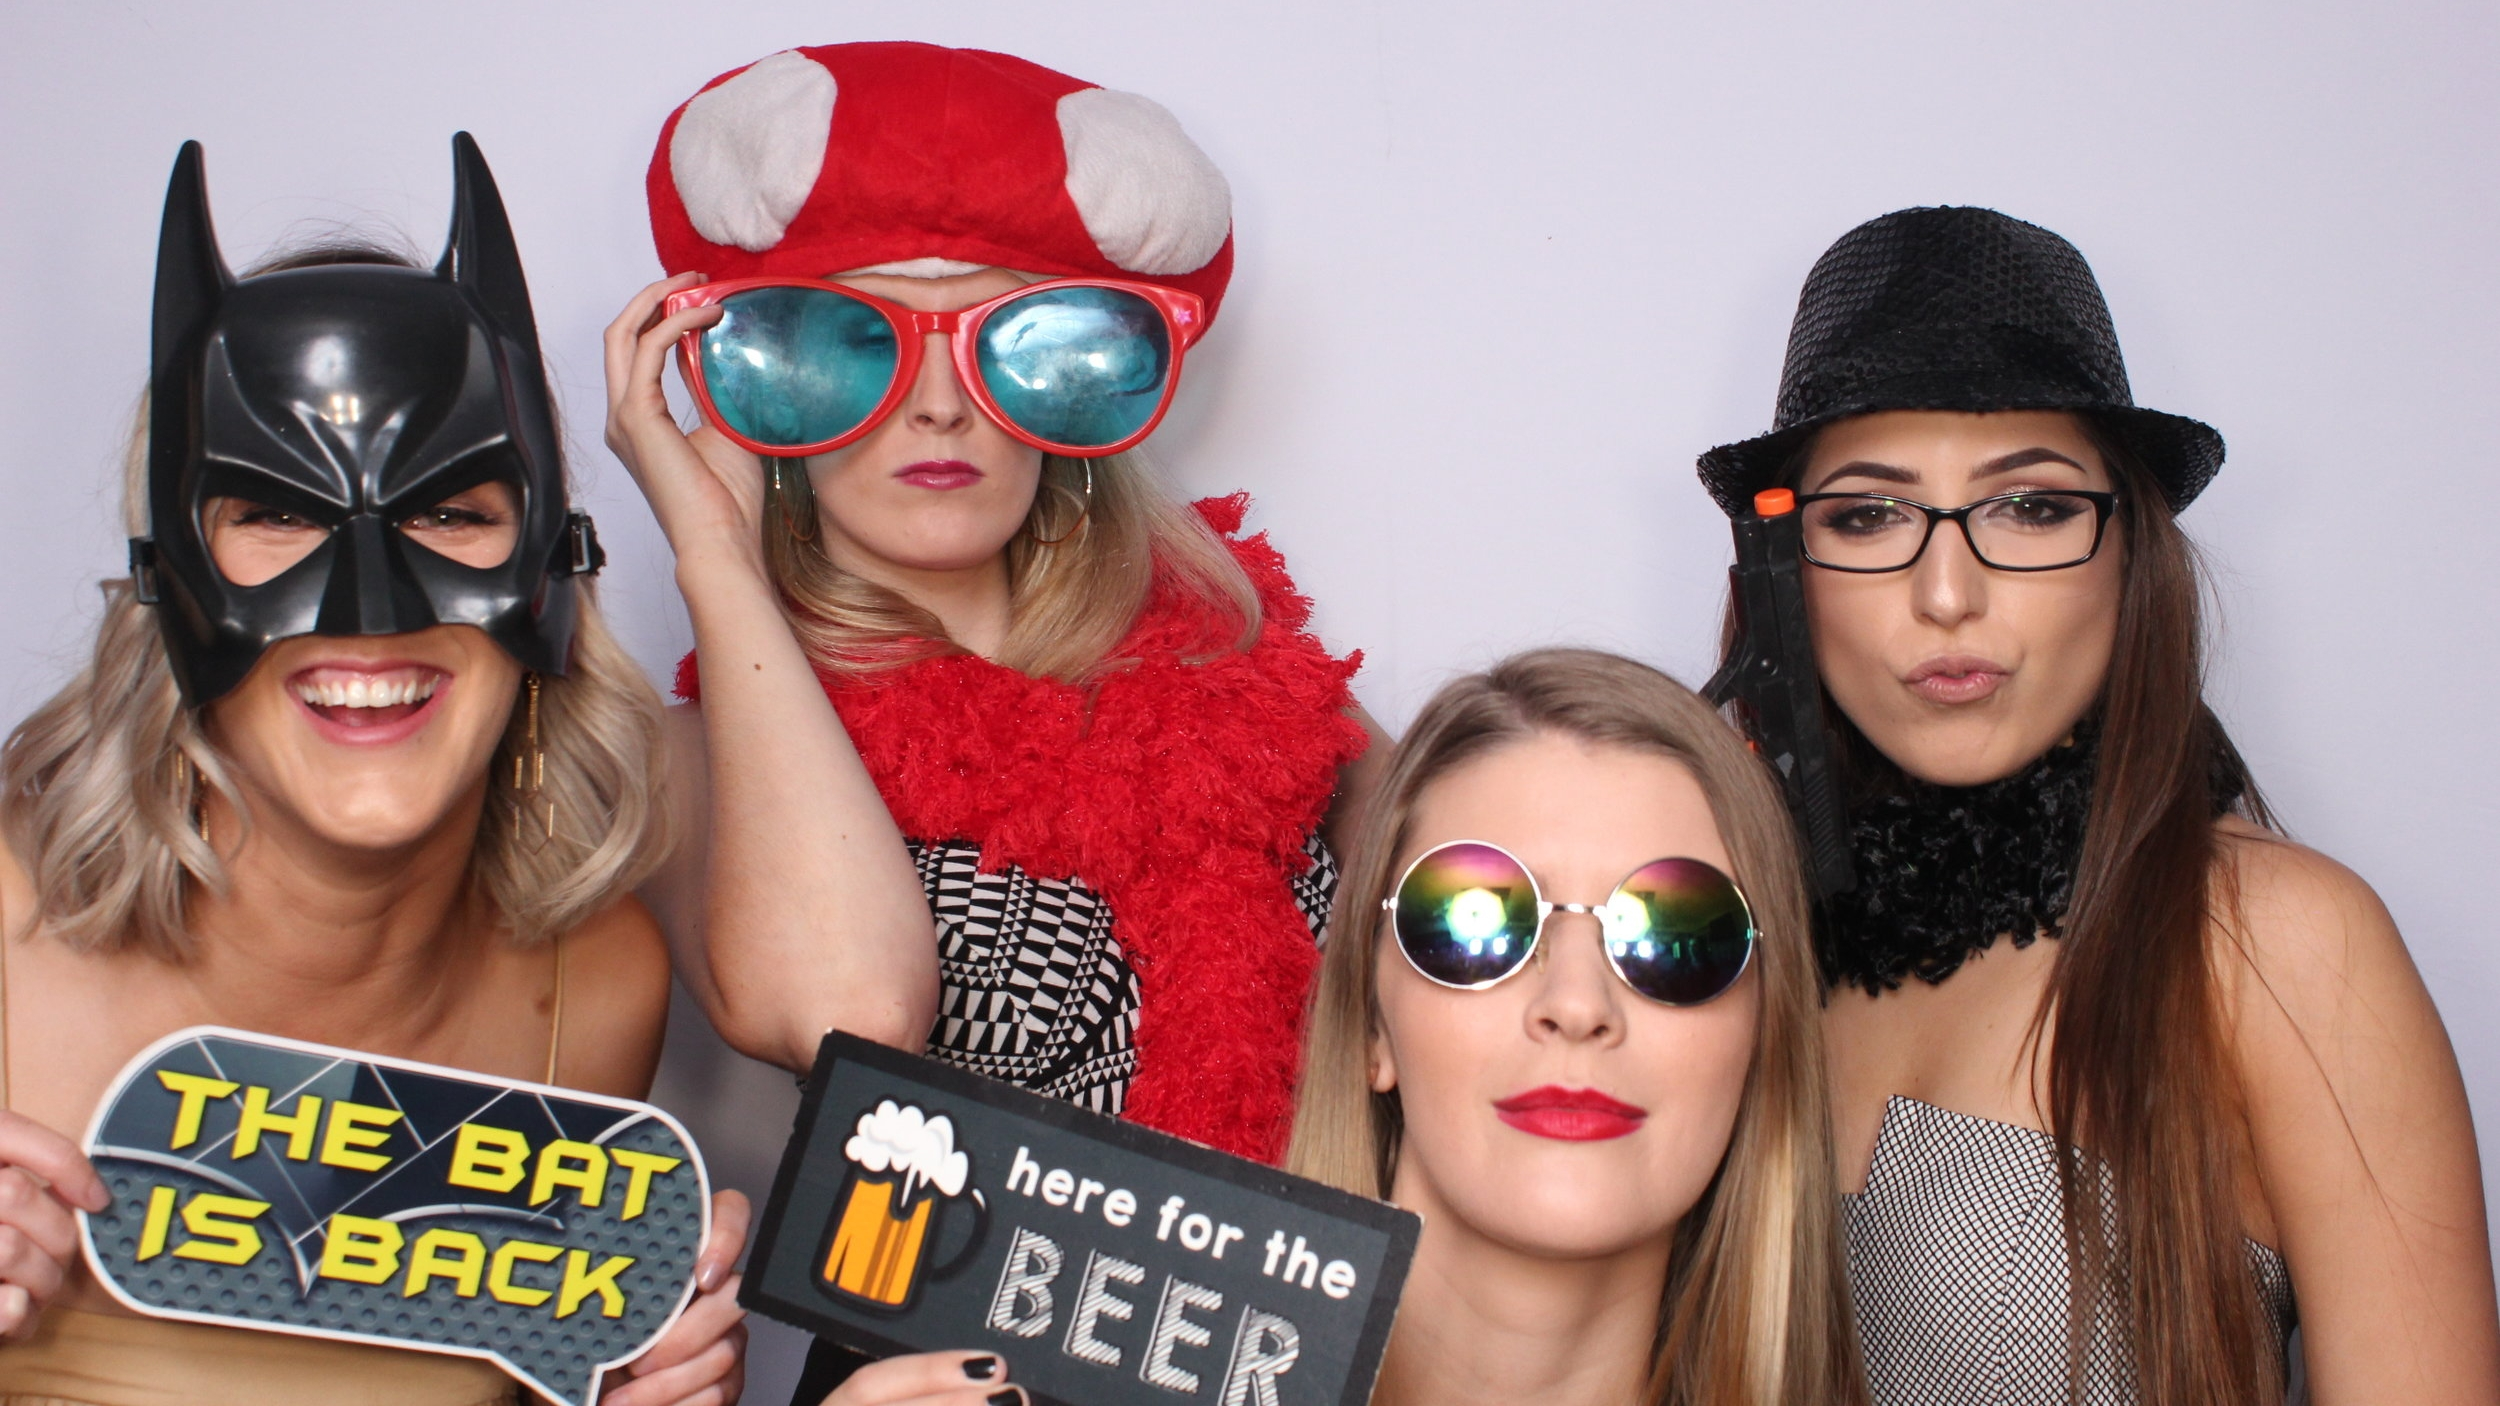 PROPS - We have a HUGE assortment of FUN props including hats, glasses, masks, boas, stick props & signs in many different themes to add more GIGGLES to your pics…your guests will be talking about your event long after the night is over as they share the AWESOME memories that ya'll created with Slapstick Photobooth in Adelaide.